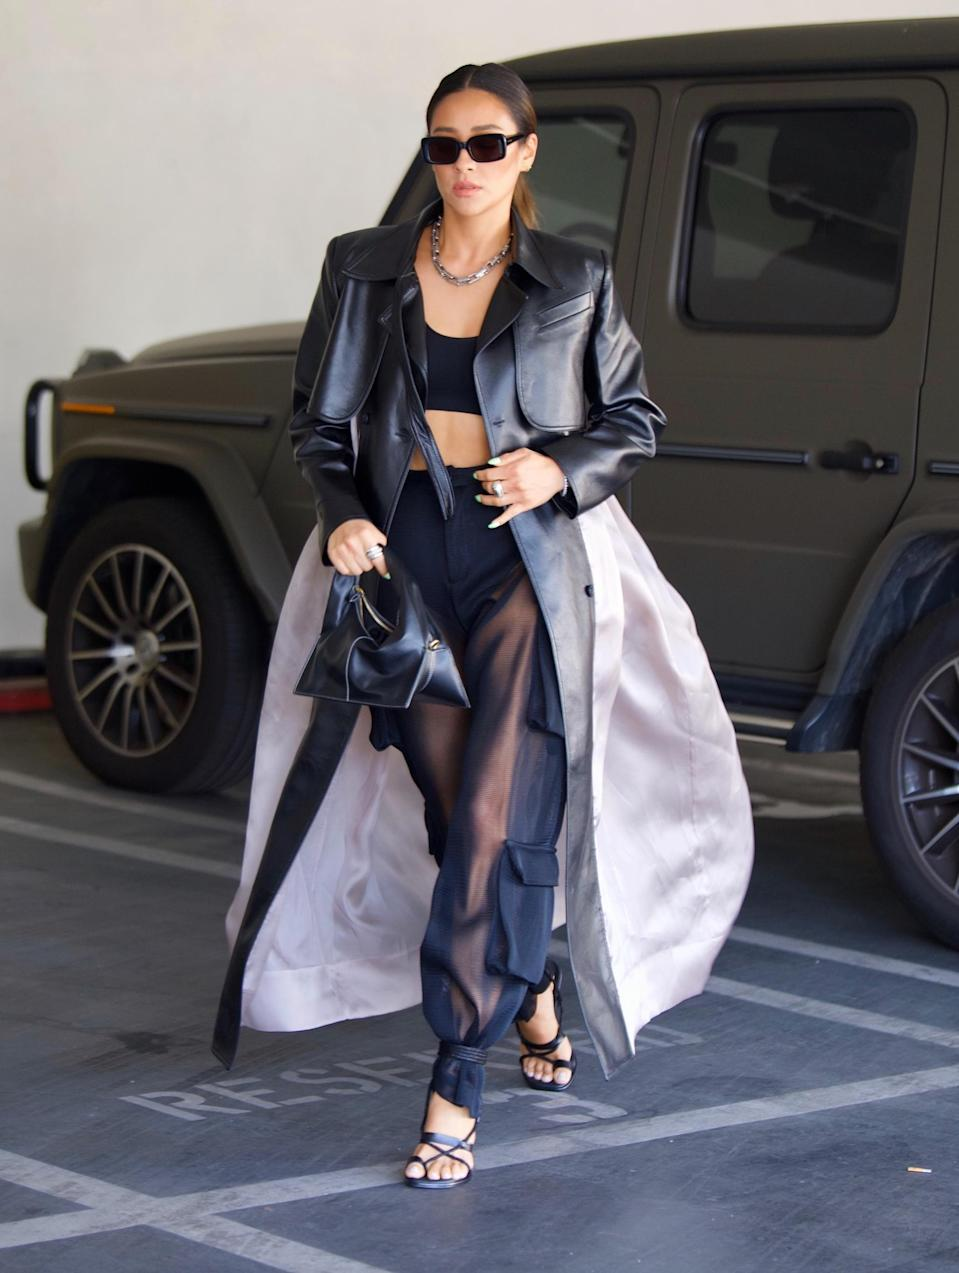 Shay Mitchell was spotted out in Beverly Hills on Tuesday as she headed to a meeting. The actress and model looked stylish in a Black crop top, cargo pants and a leather accented trench coat as she grabbed a few things from her car alongside an assistant. 25 May 2021 Pictured: Shay Mitchell. Photo credit: MEGA TheMegaAgency.com +1 888 505 6342 (Mega Agency TagID: MEGA757529_001.jpg) [Photo via Mega Agency]